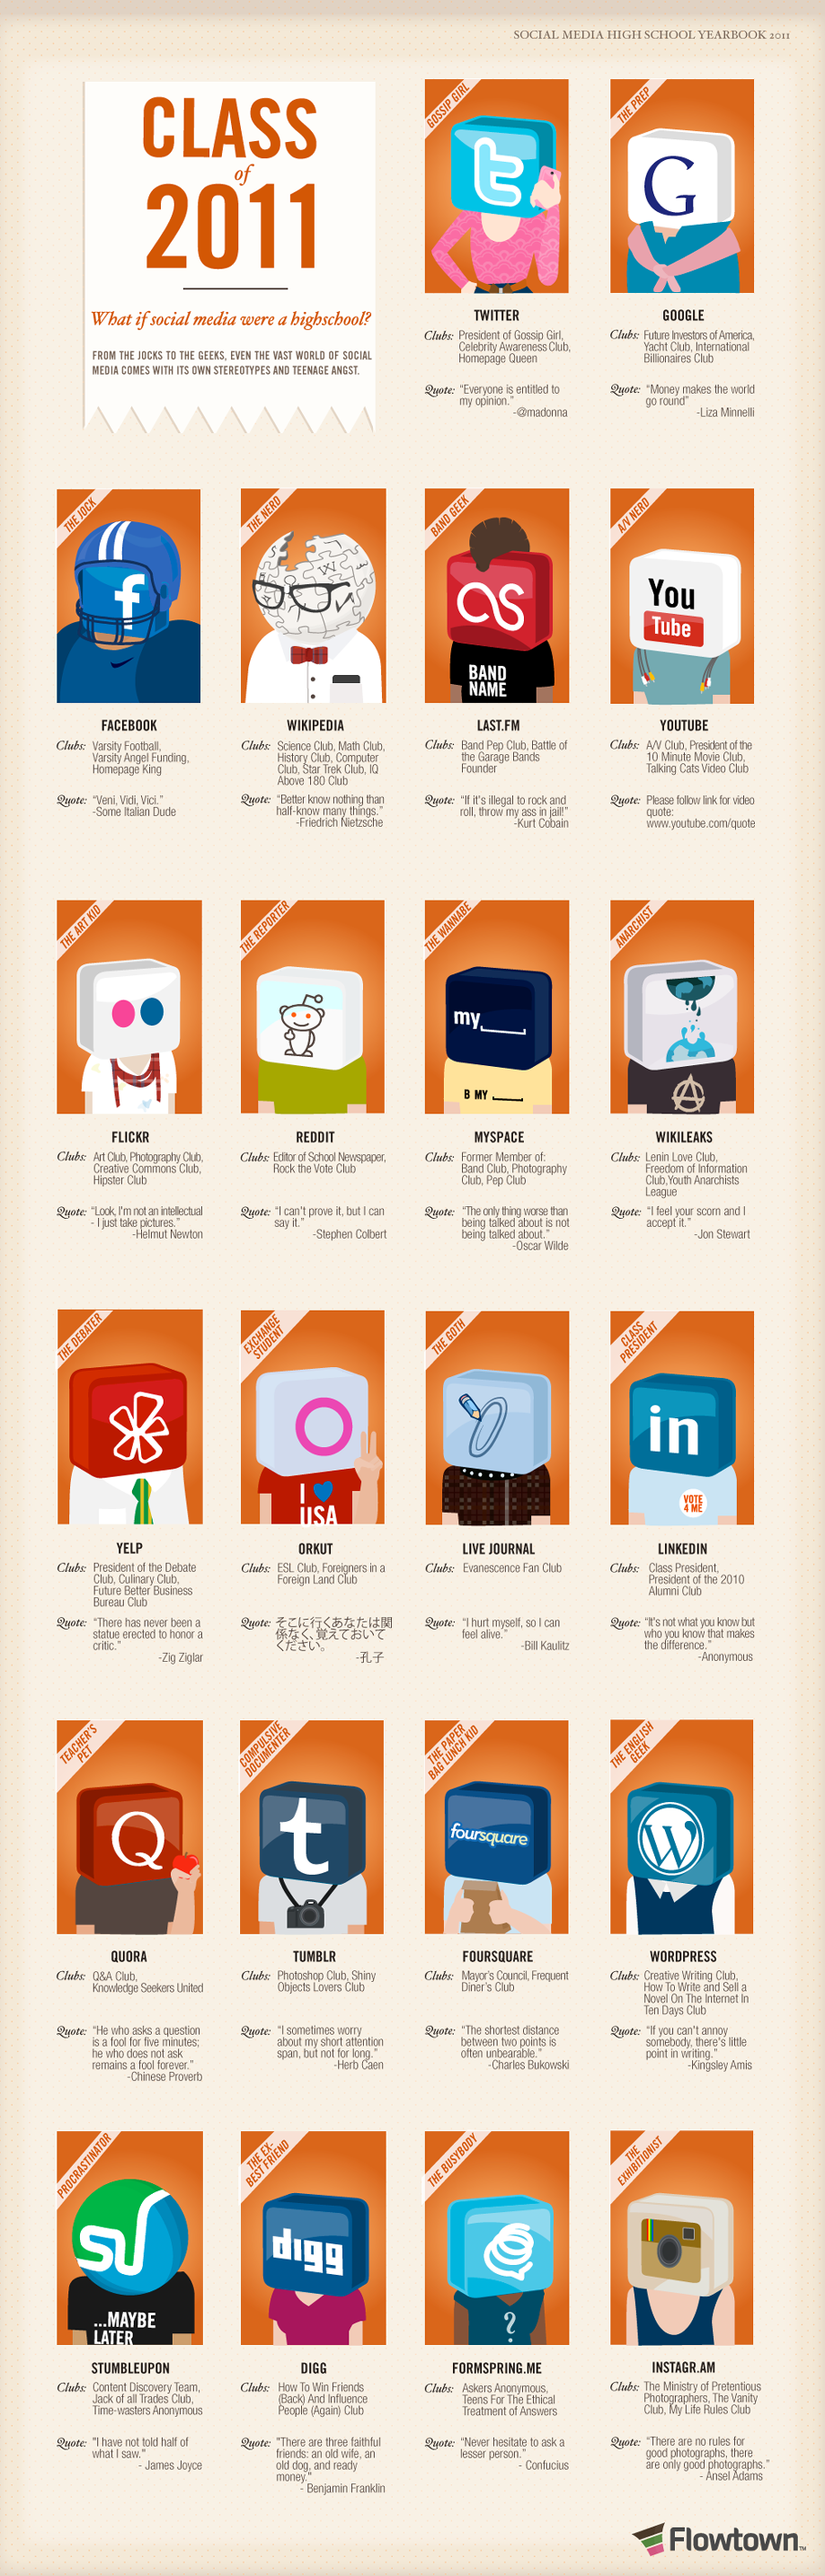 Infographic: Social Media High School